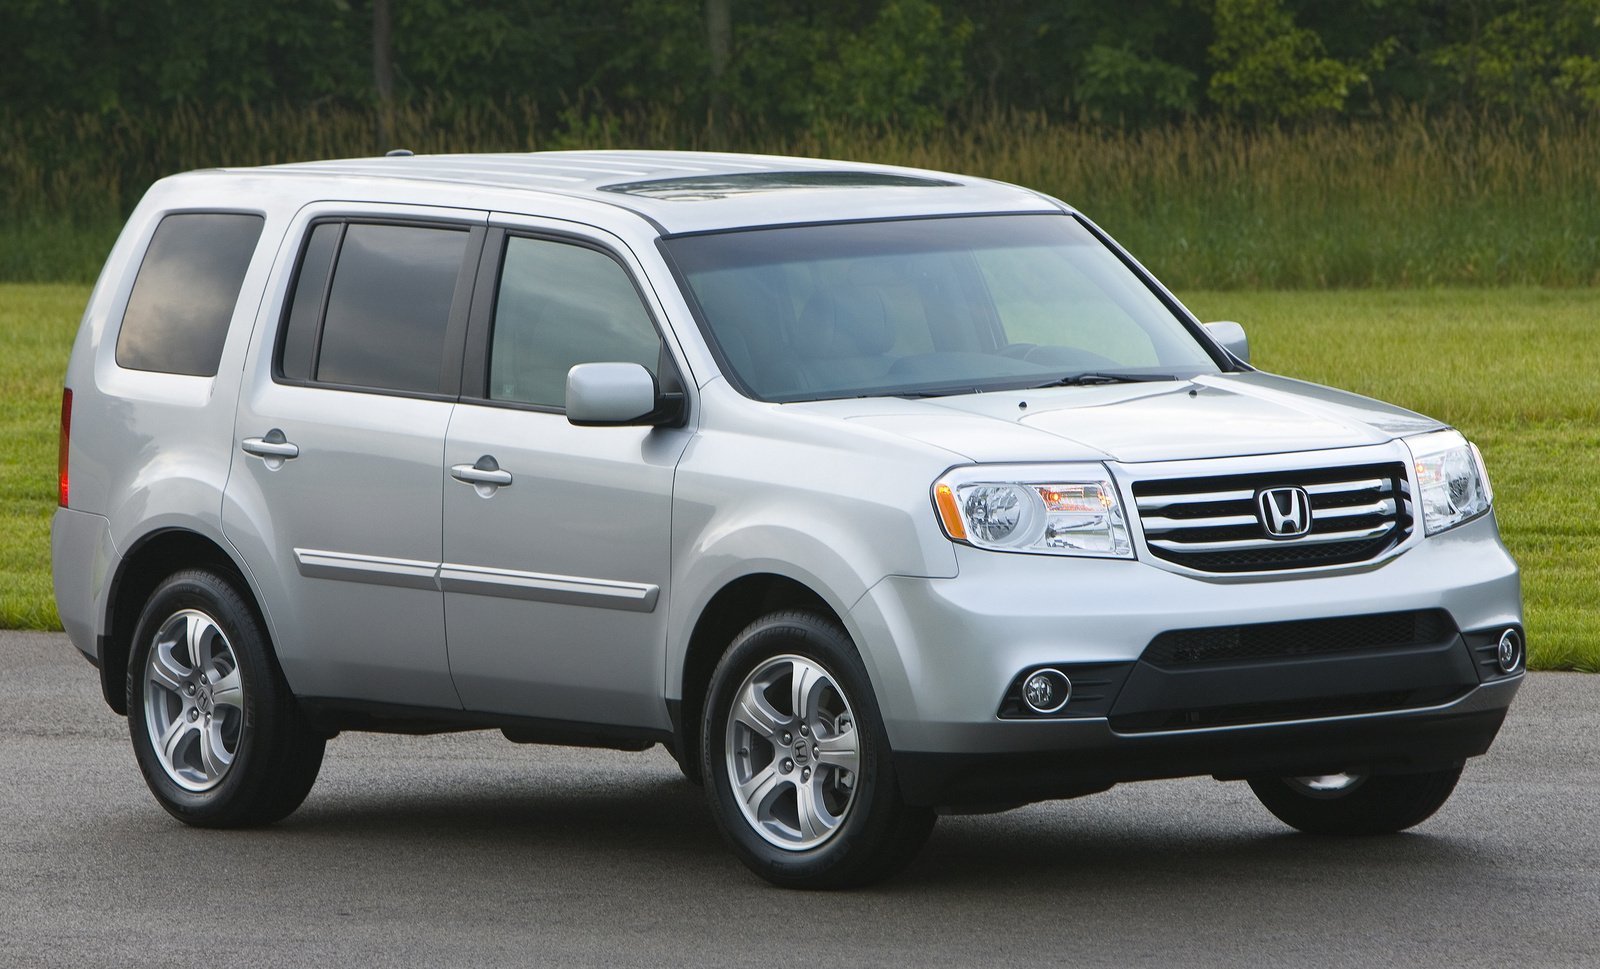 New 2015 2016 honda pilot for sale cargurus for Honda pilot images